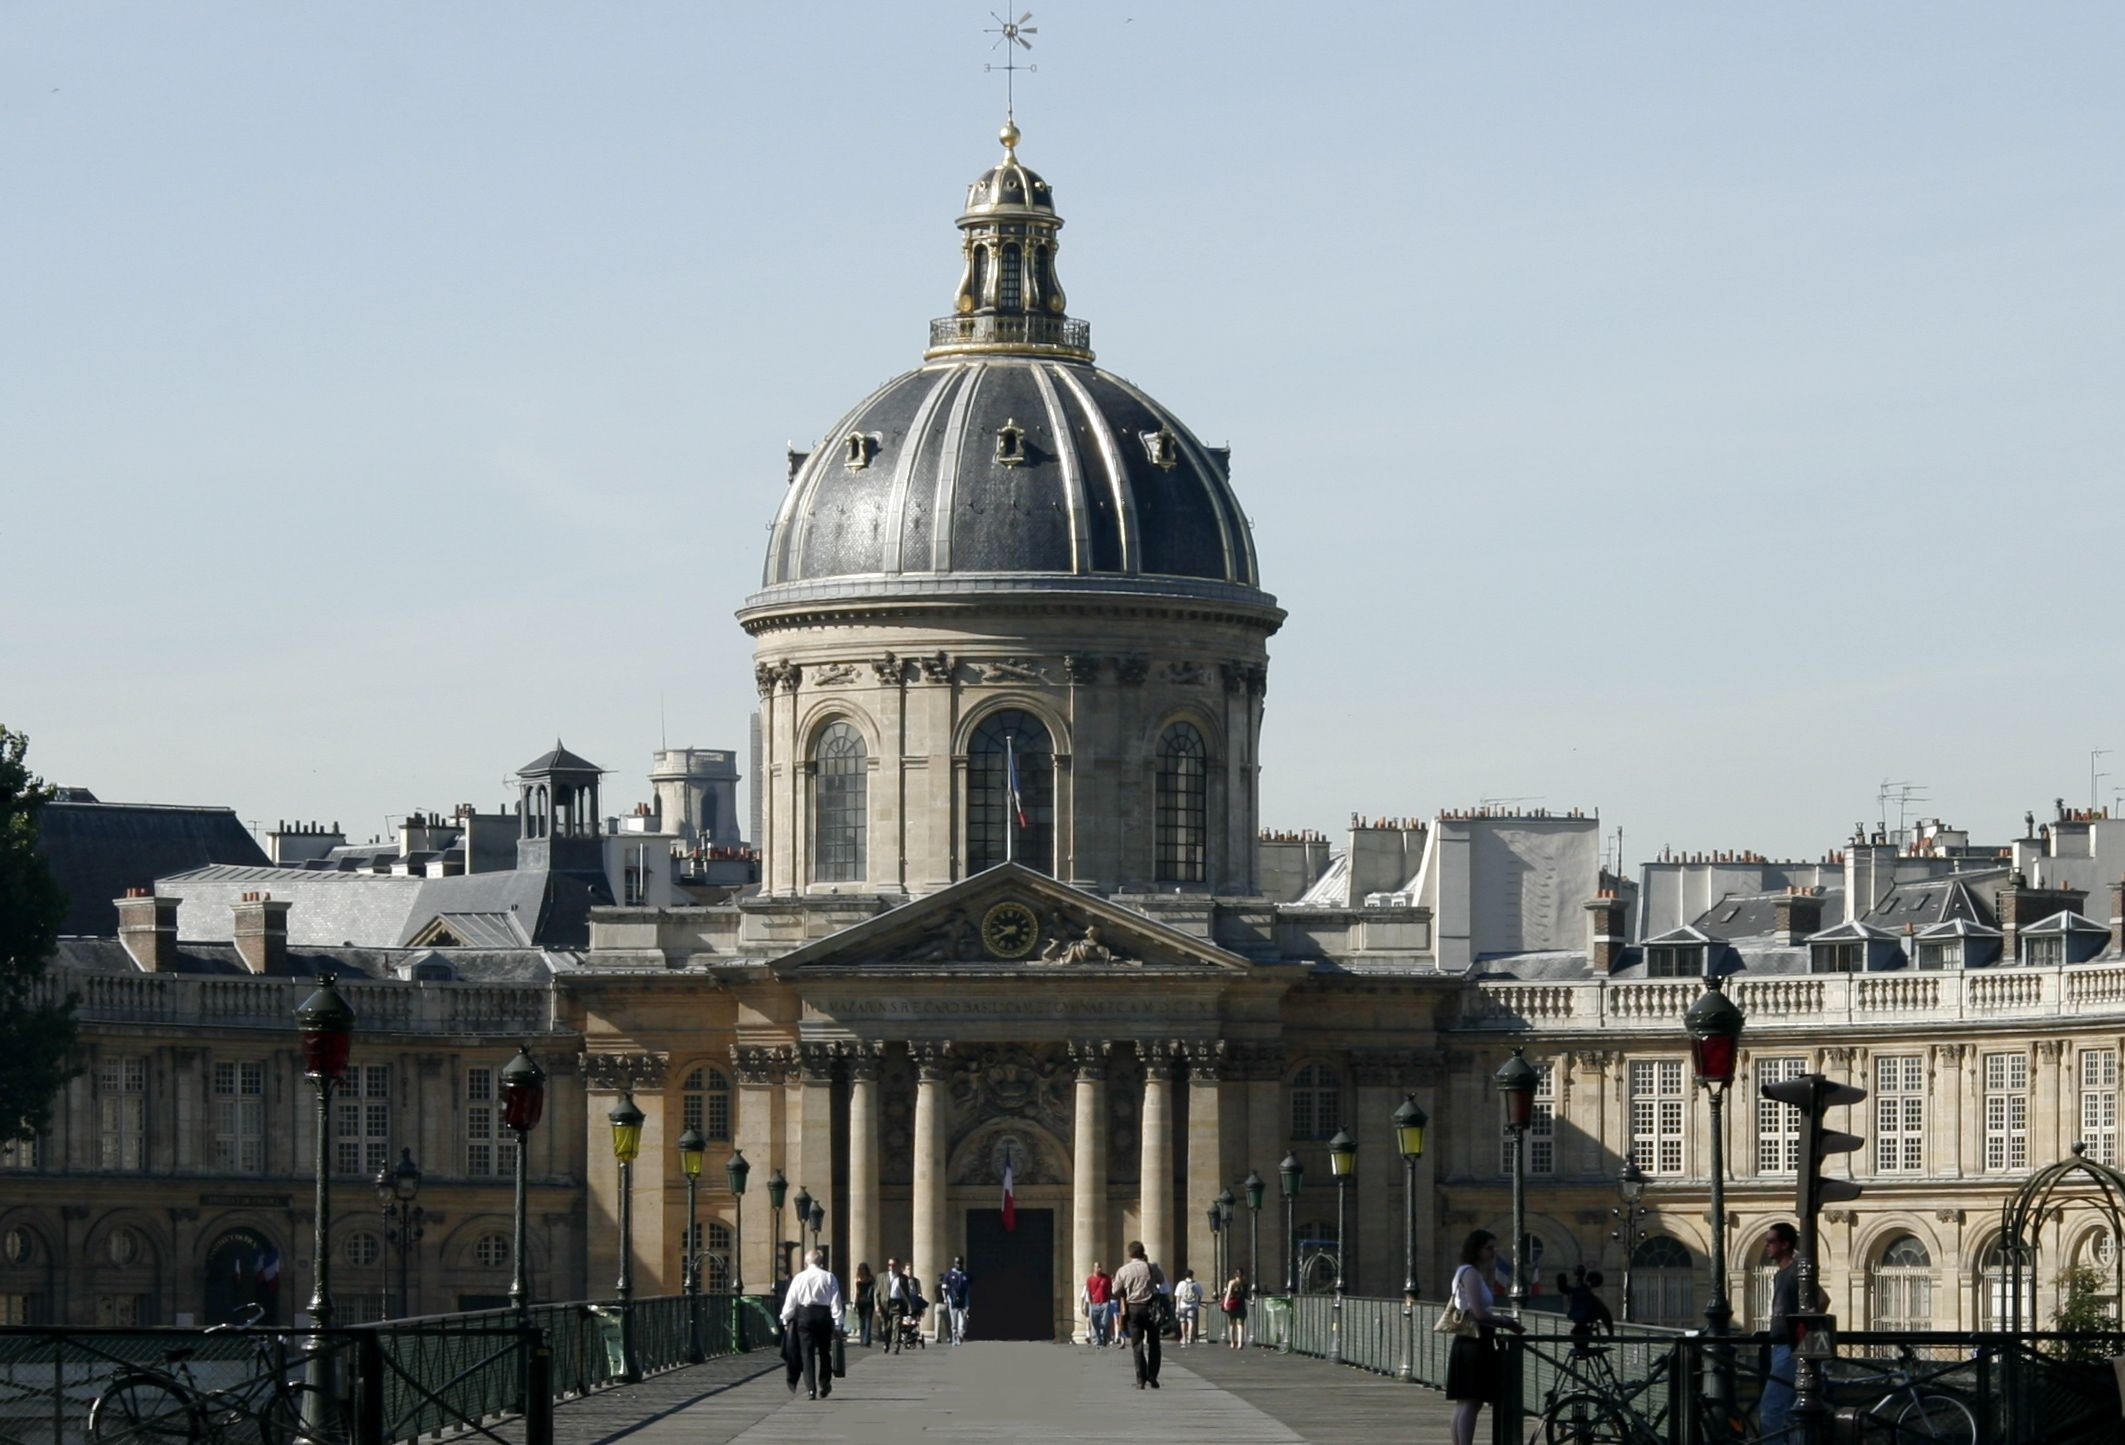 The French Academy dome